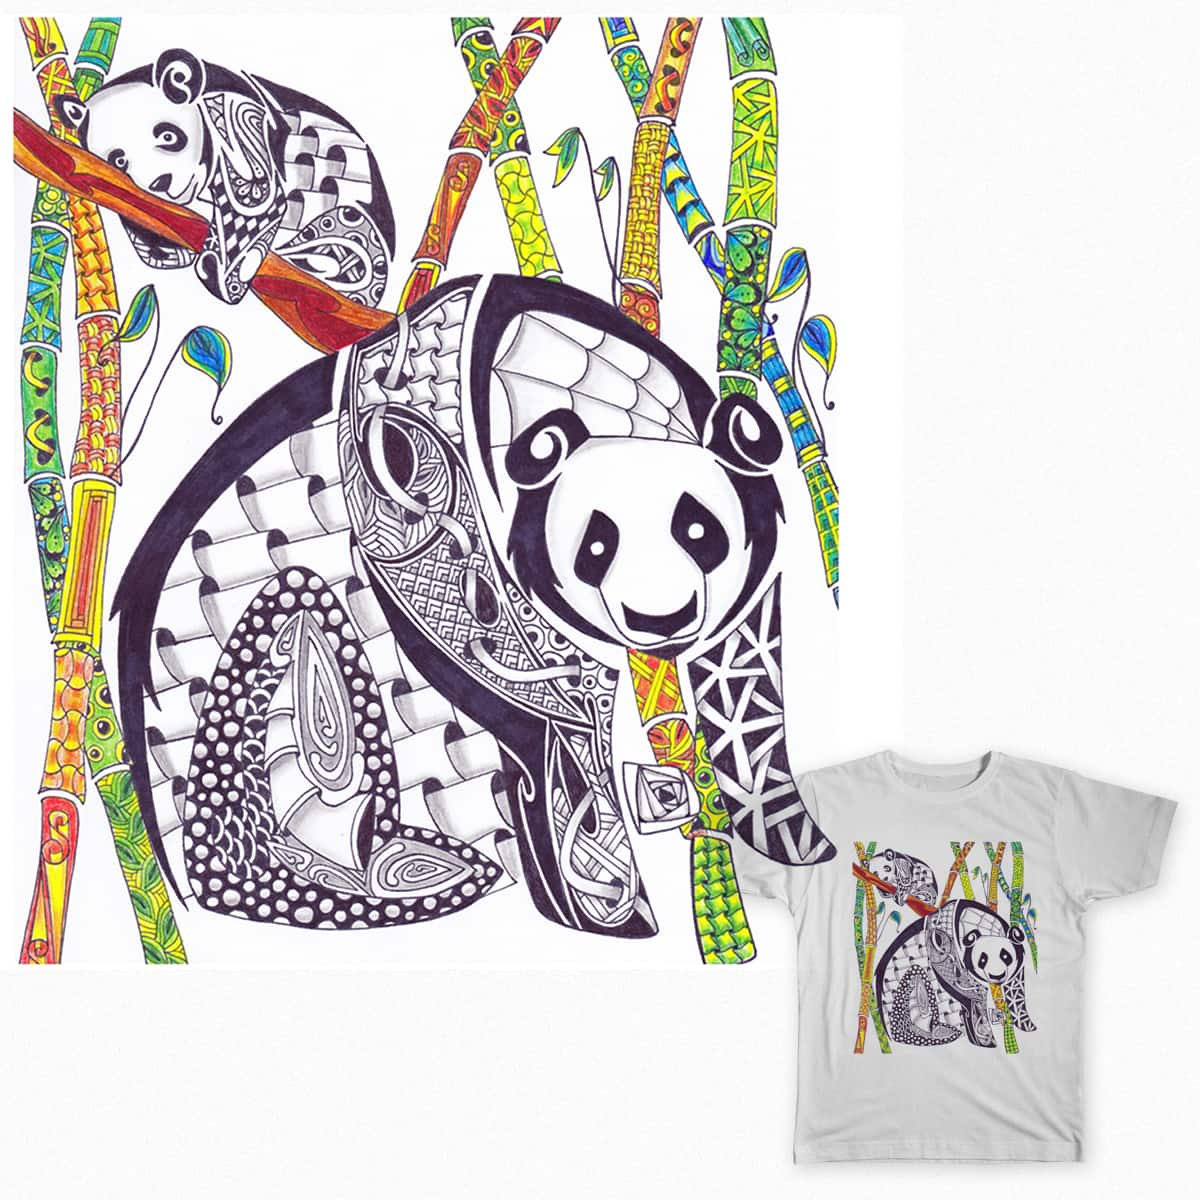 Zen Pandas by Lace Face on Threadless